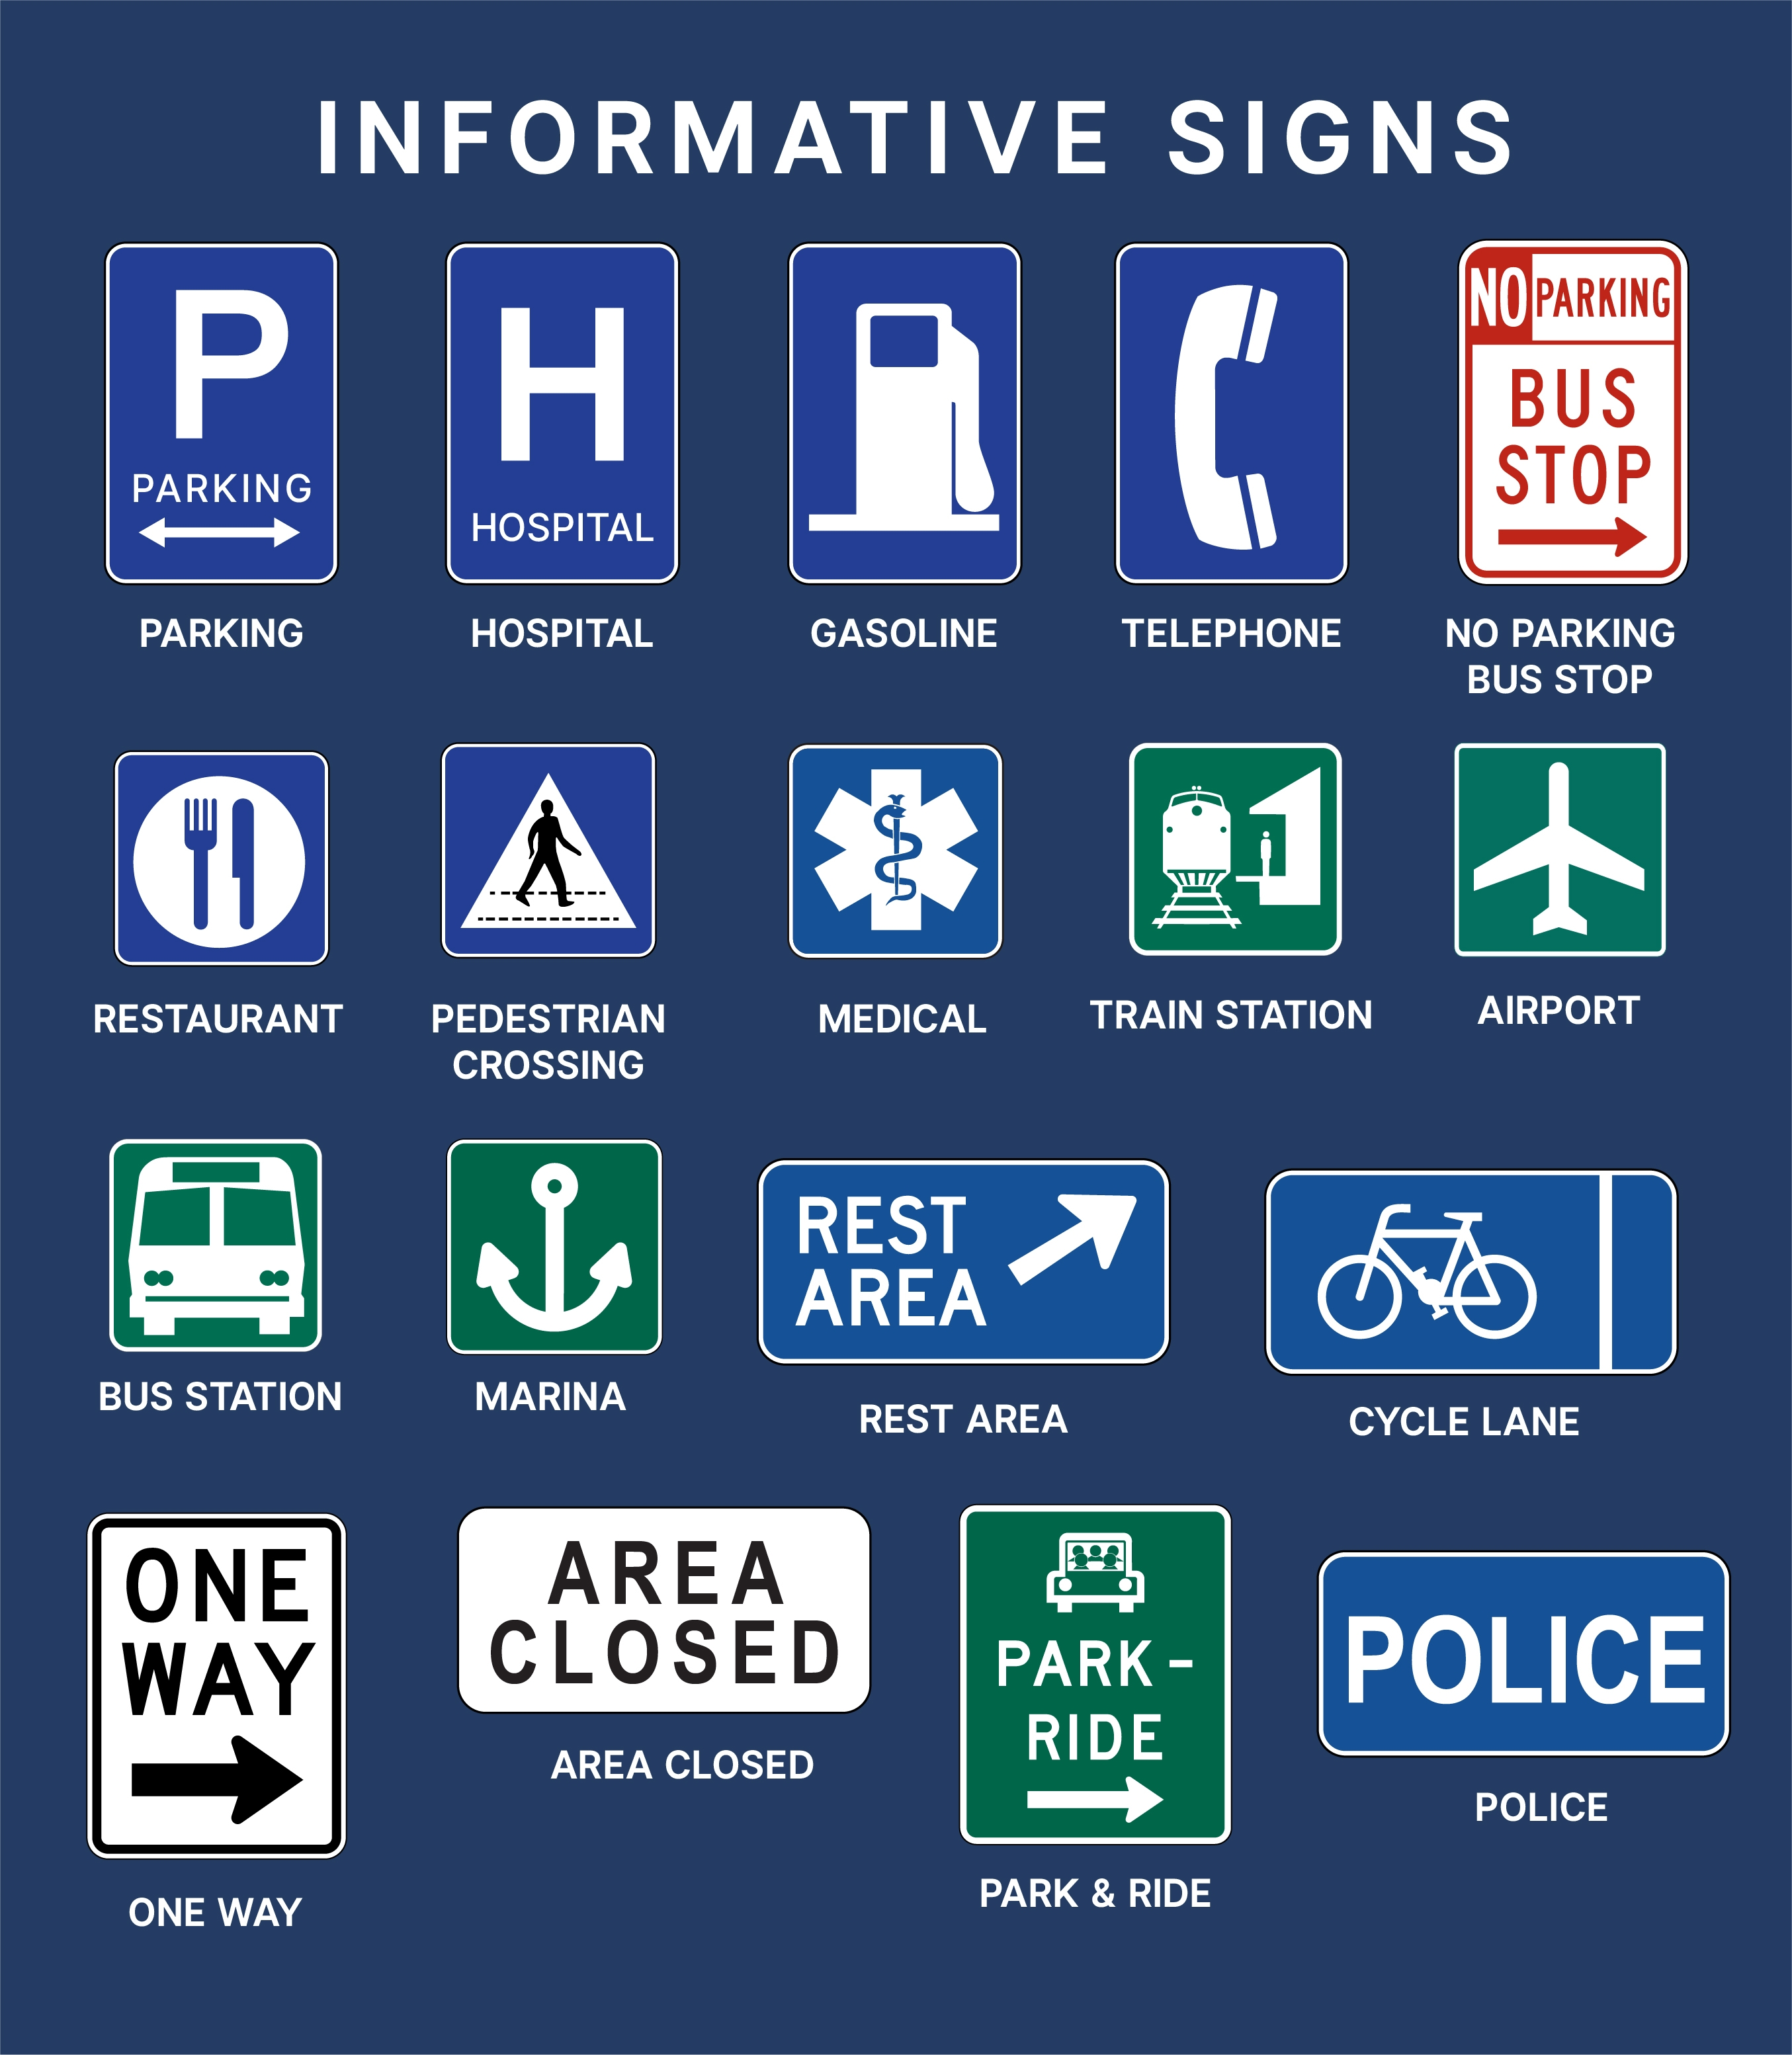 How Well Do You Know Ph Road Signs